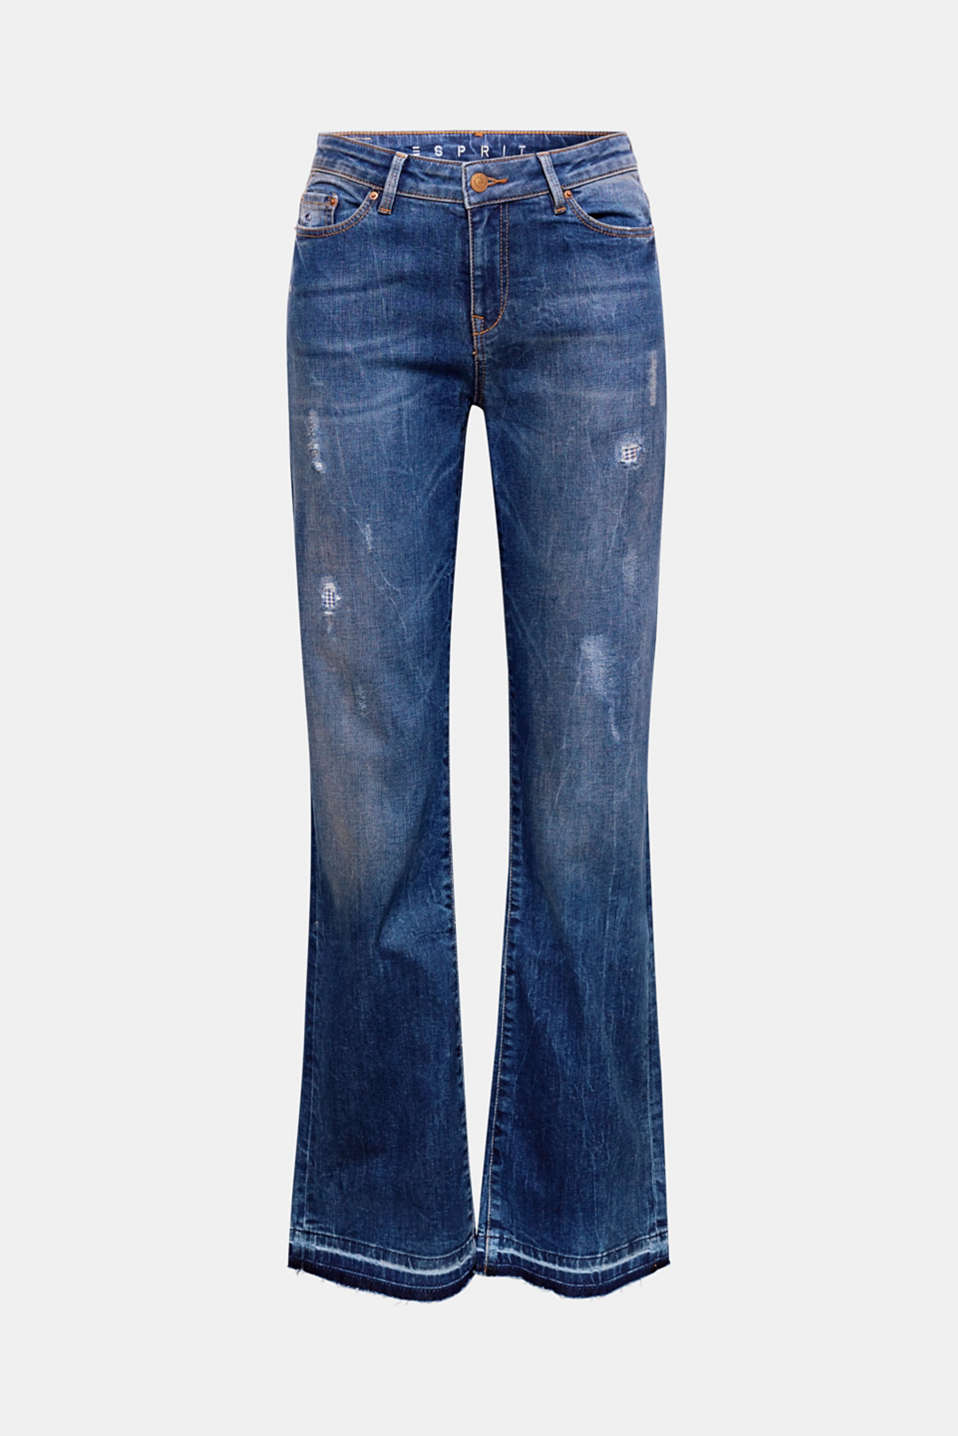 We love distressed denim! The destroyed finish and bootcut design give these jeans their unique style.